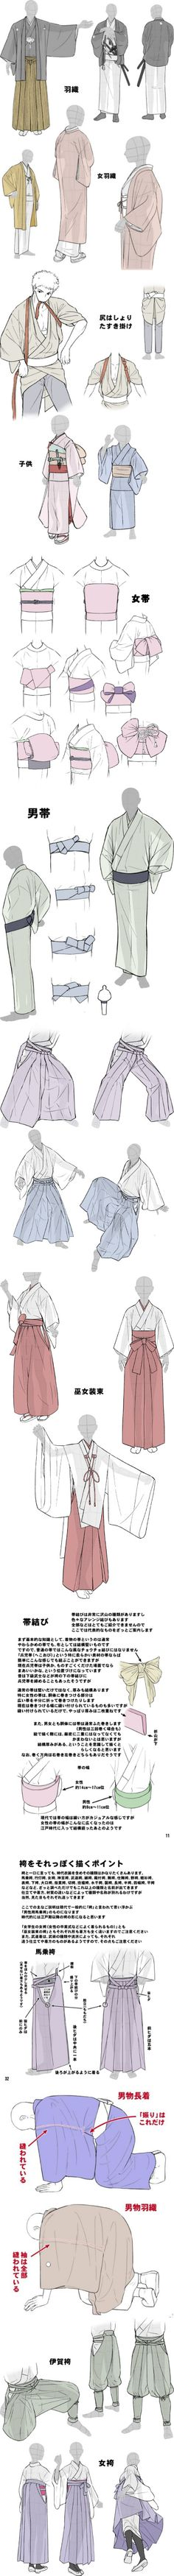 Drawing Clothes Outfits Sketch Inspiration 21 Ideas For 2019 Manga Drawing, Drawing Tips, Drawing Reference, Manga Art, Manga Clothes, Drawing Clothes, Tutorial Draw, Manga Posen, Japanese Outfits